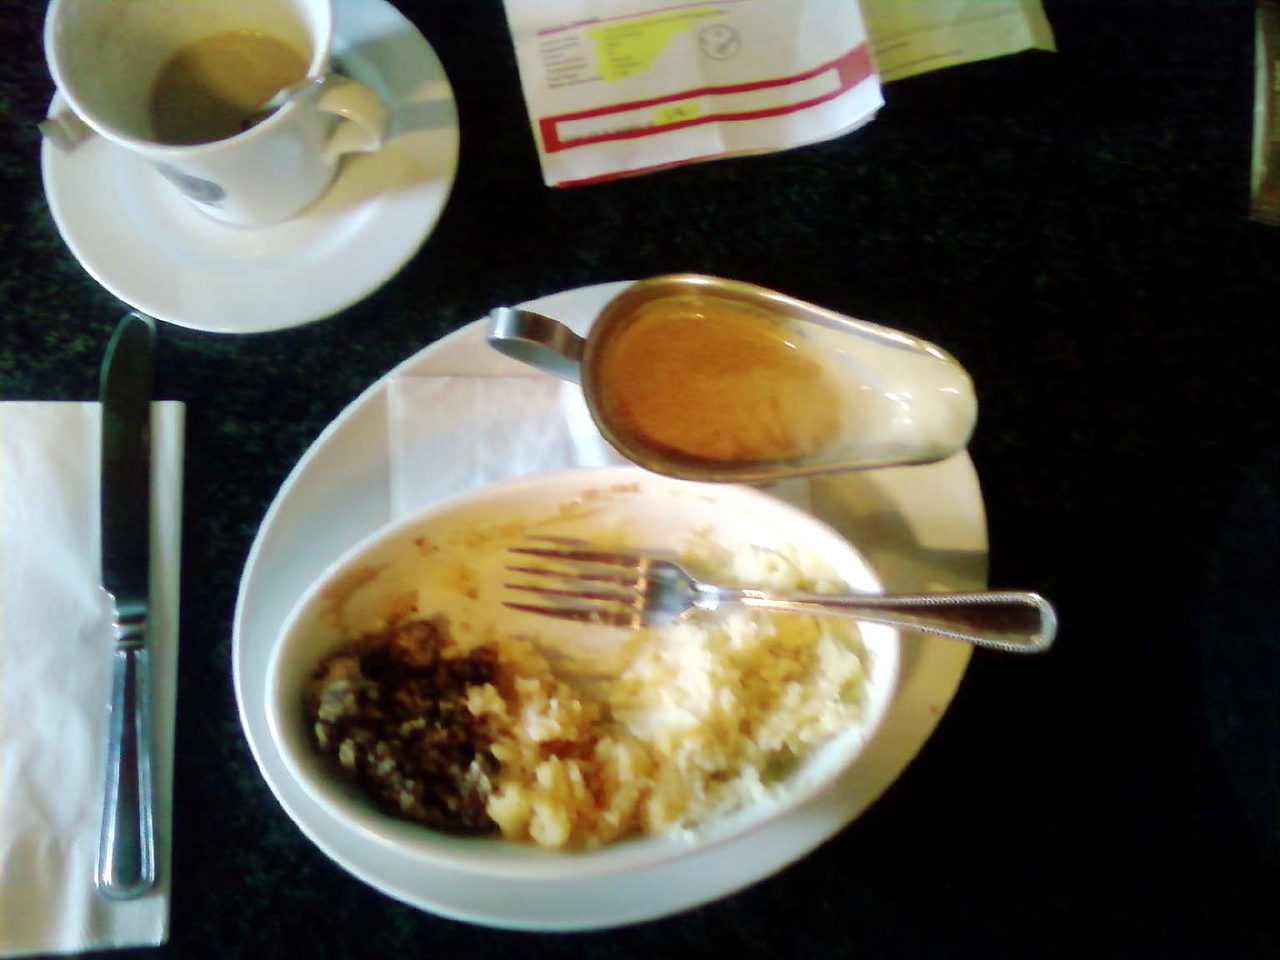 Half-eaten haggis. I meant to take a picture before I started eating it, but I couldn't resist it long enough.<br /> <br /> That's the haggis on the left of the dish. The middle is cauliflower, I think. The right is mashed potatoes.